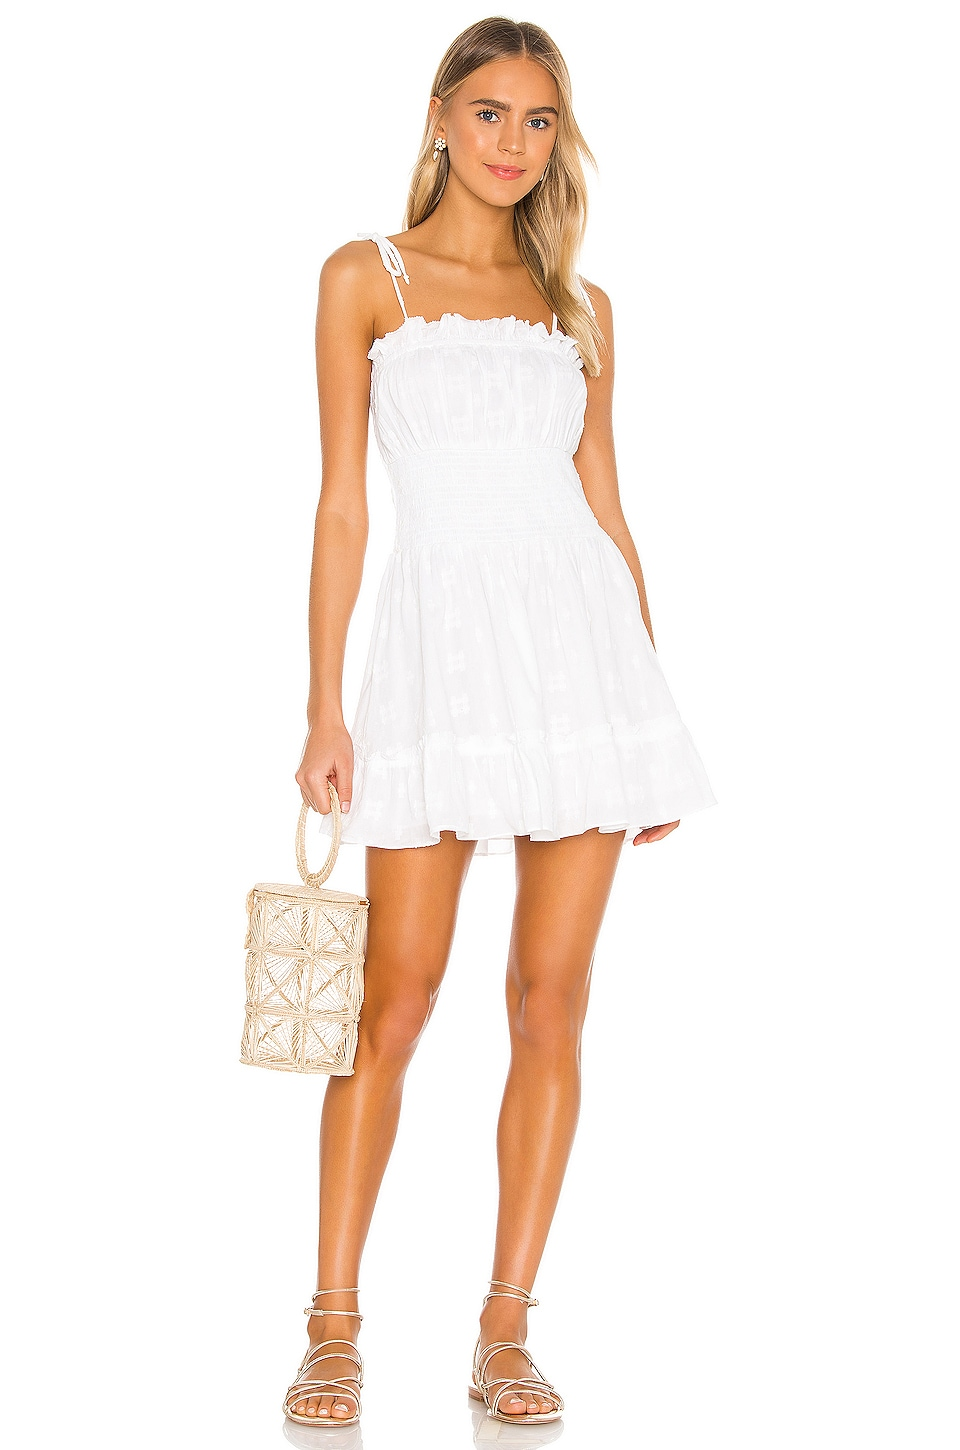 Marrakesh Mini Dress             Cleobella                                                                                                       CA$ 226.98 16